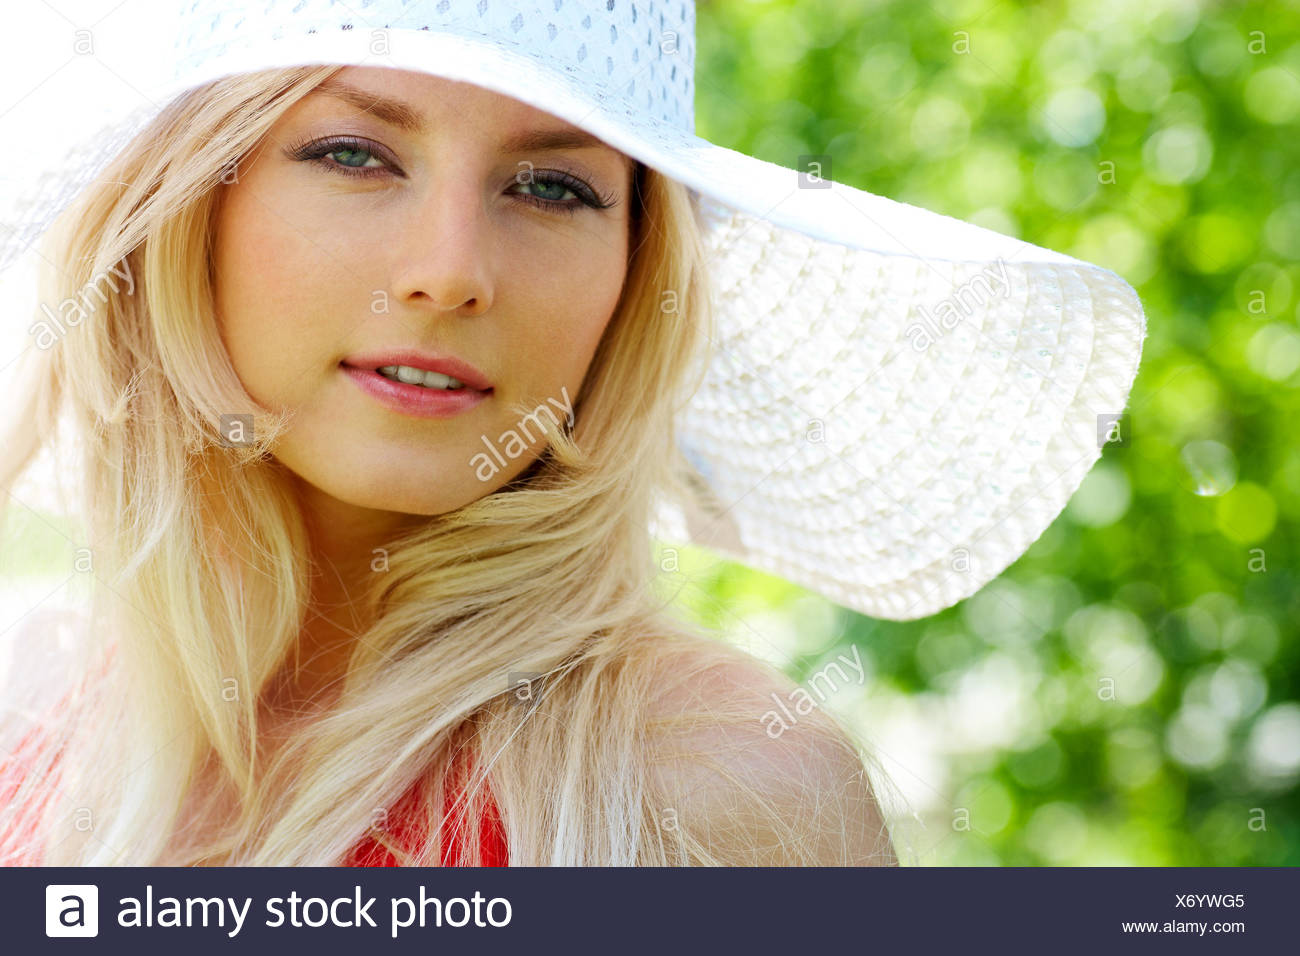 woman, humans, human beings, people, folk, persons, human, human being, laugh, Stock Photo